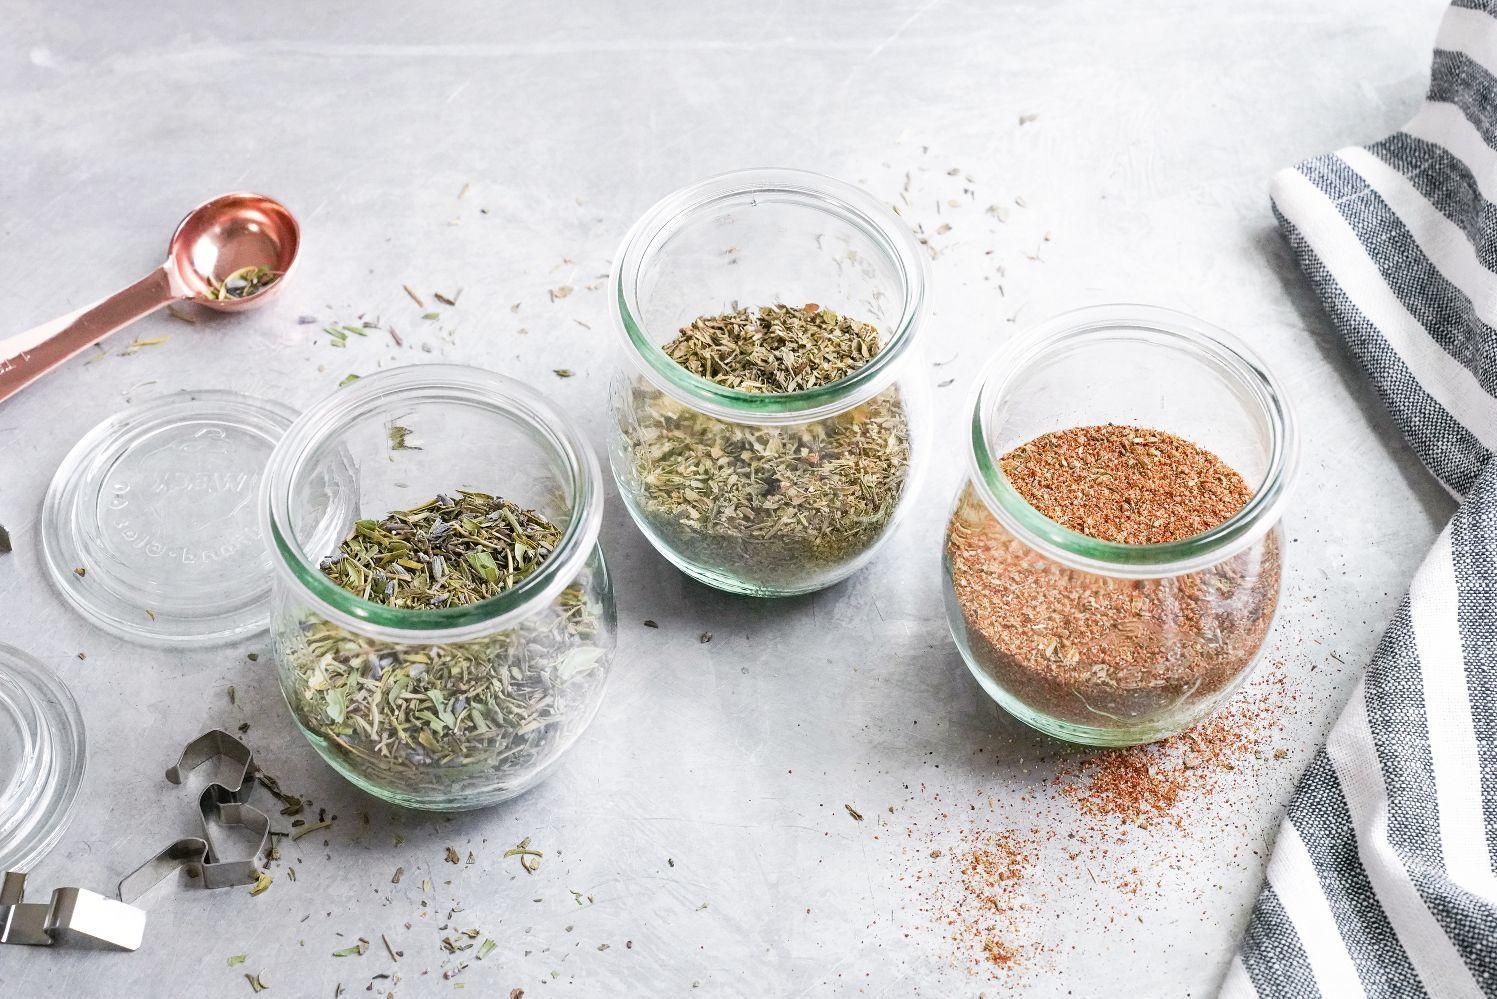 homemade seasonings and herb mixes